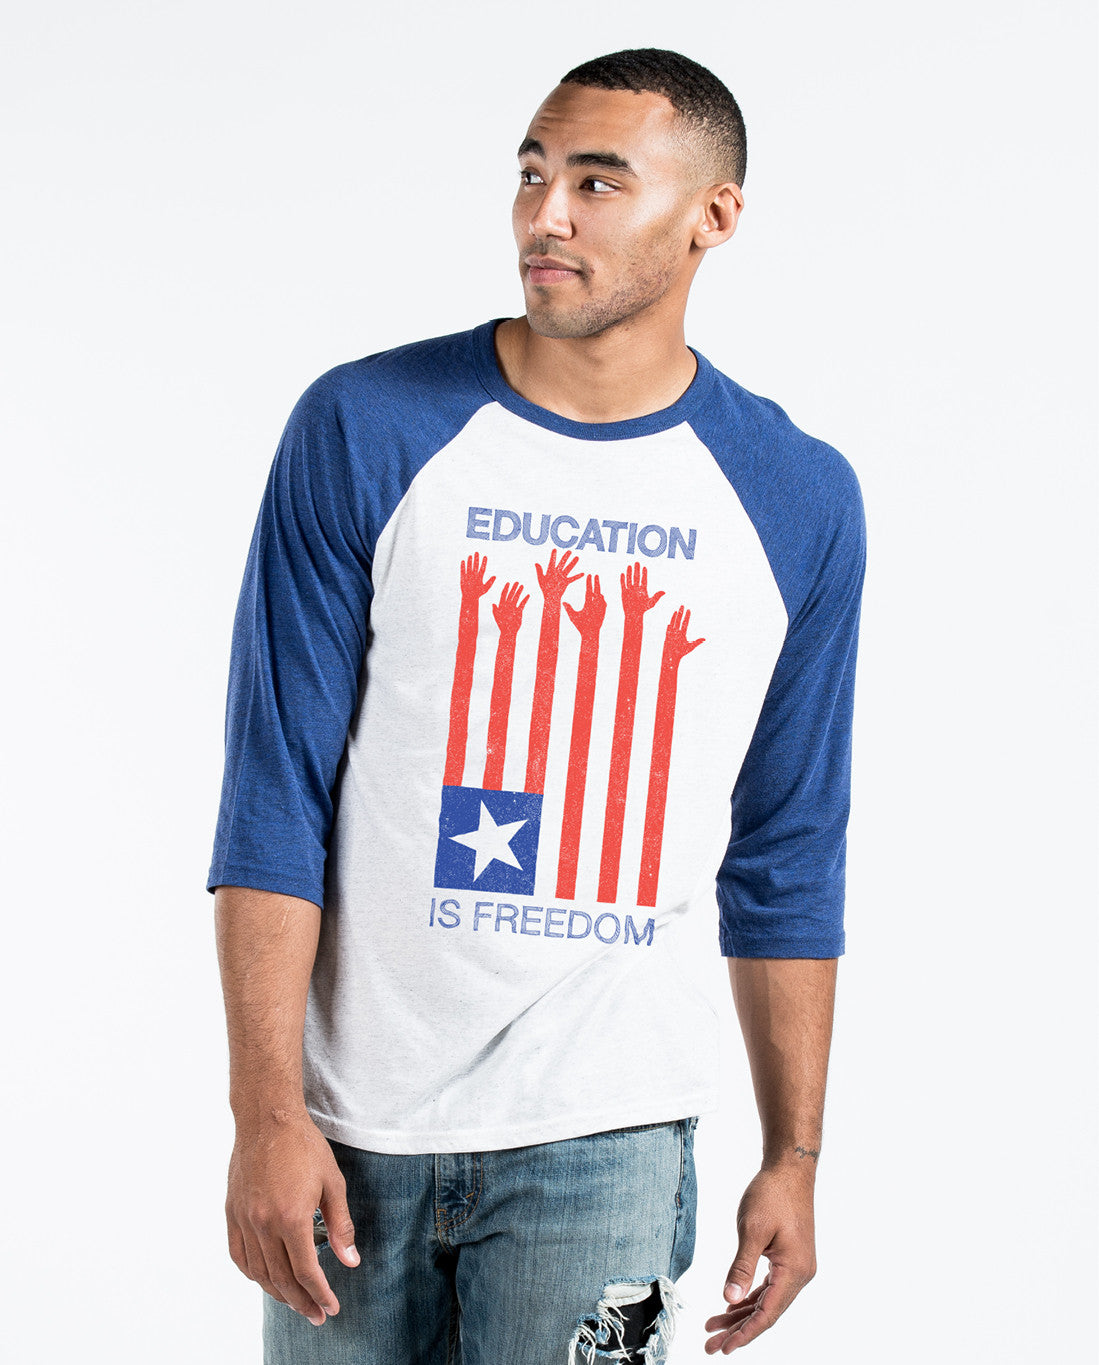 Education Is Freedom Unisex Quarter Sleeve Baseball Tee